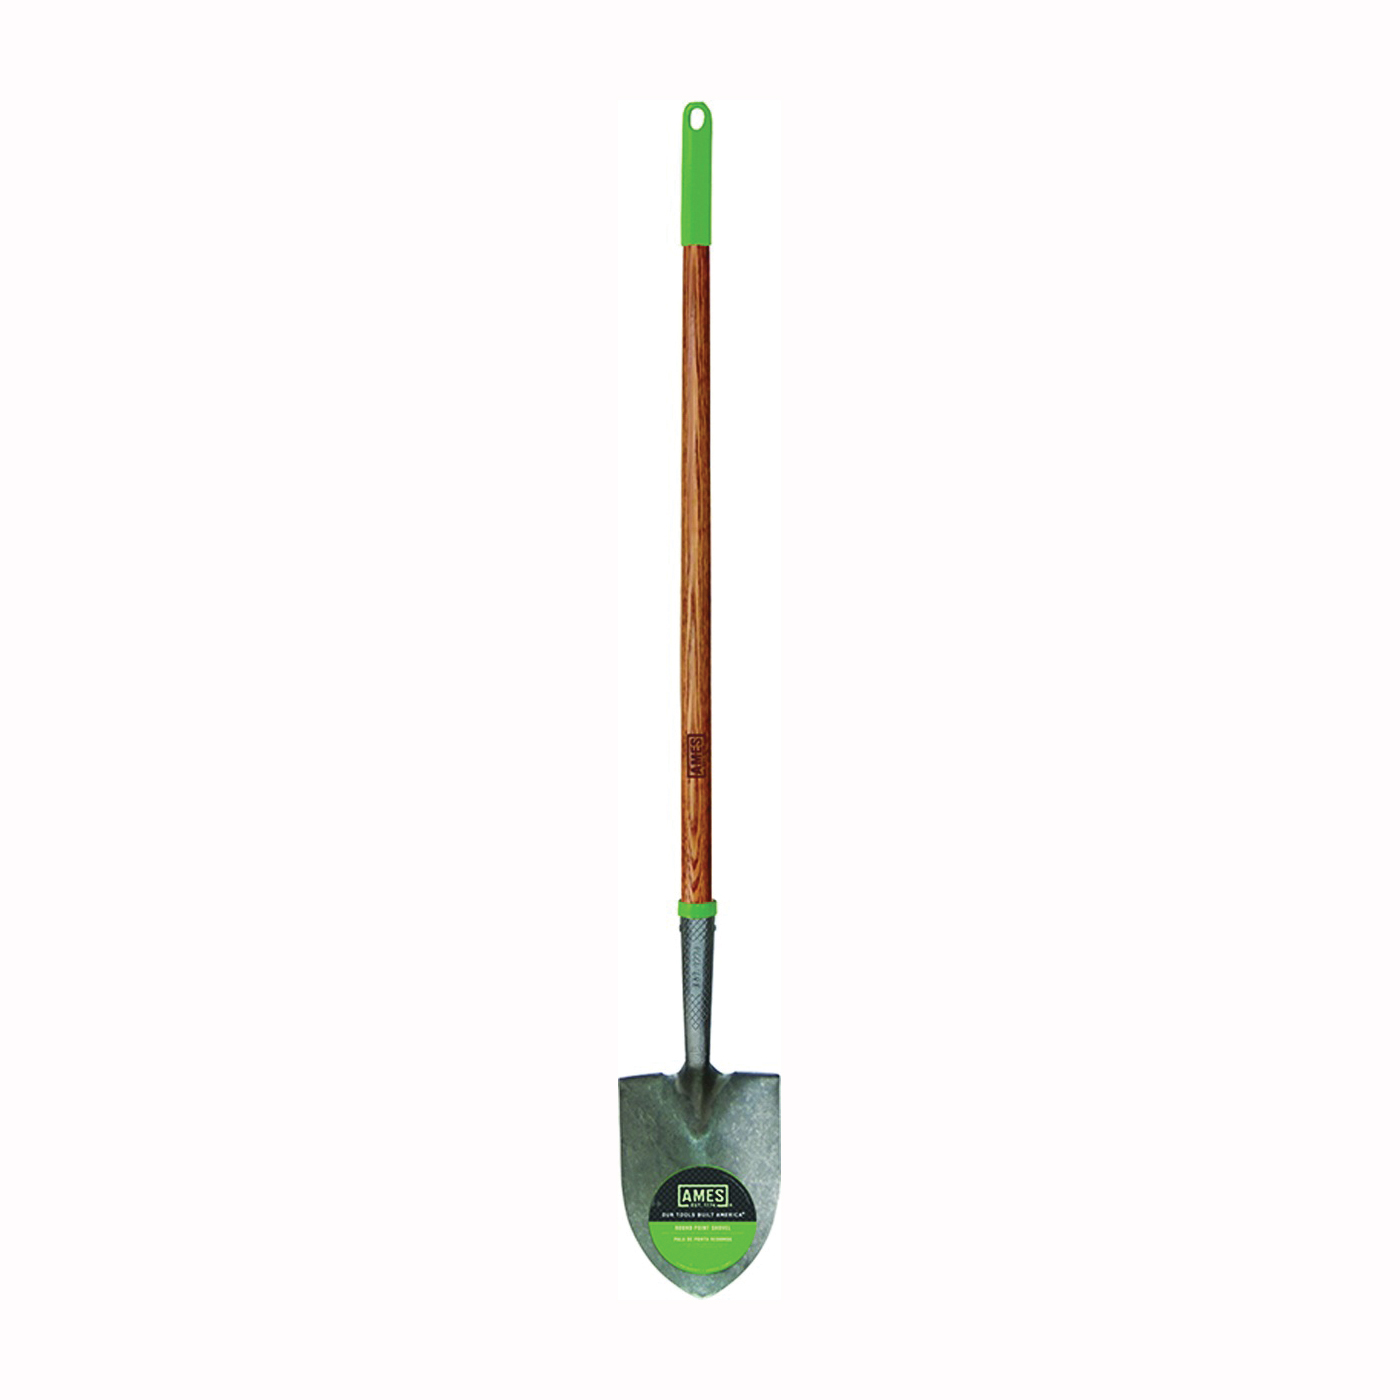 Picture of AMES 2916100 Floral Shovel, 6 in W Blade, Steel Blade, Hardwood Handle, Long Handle, 43 in L Handle